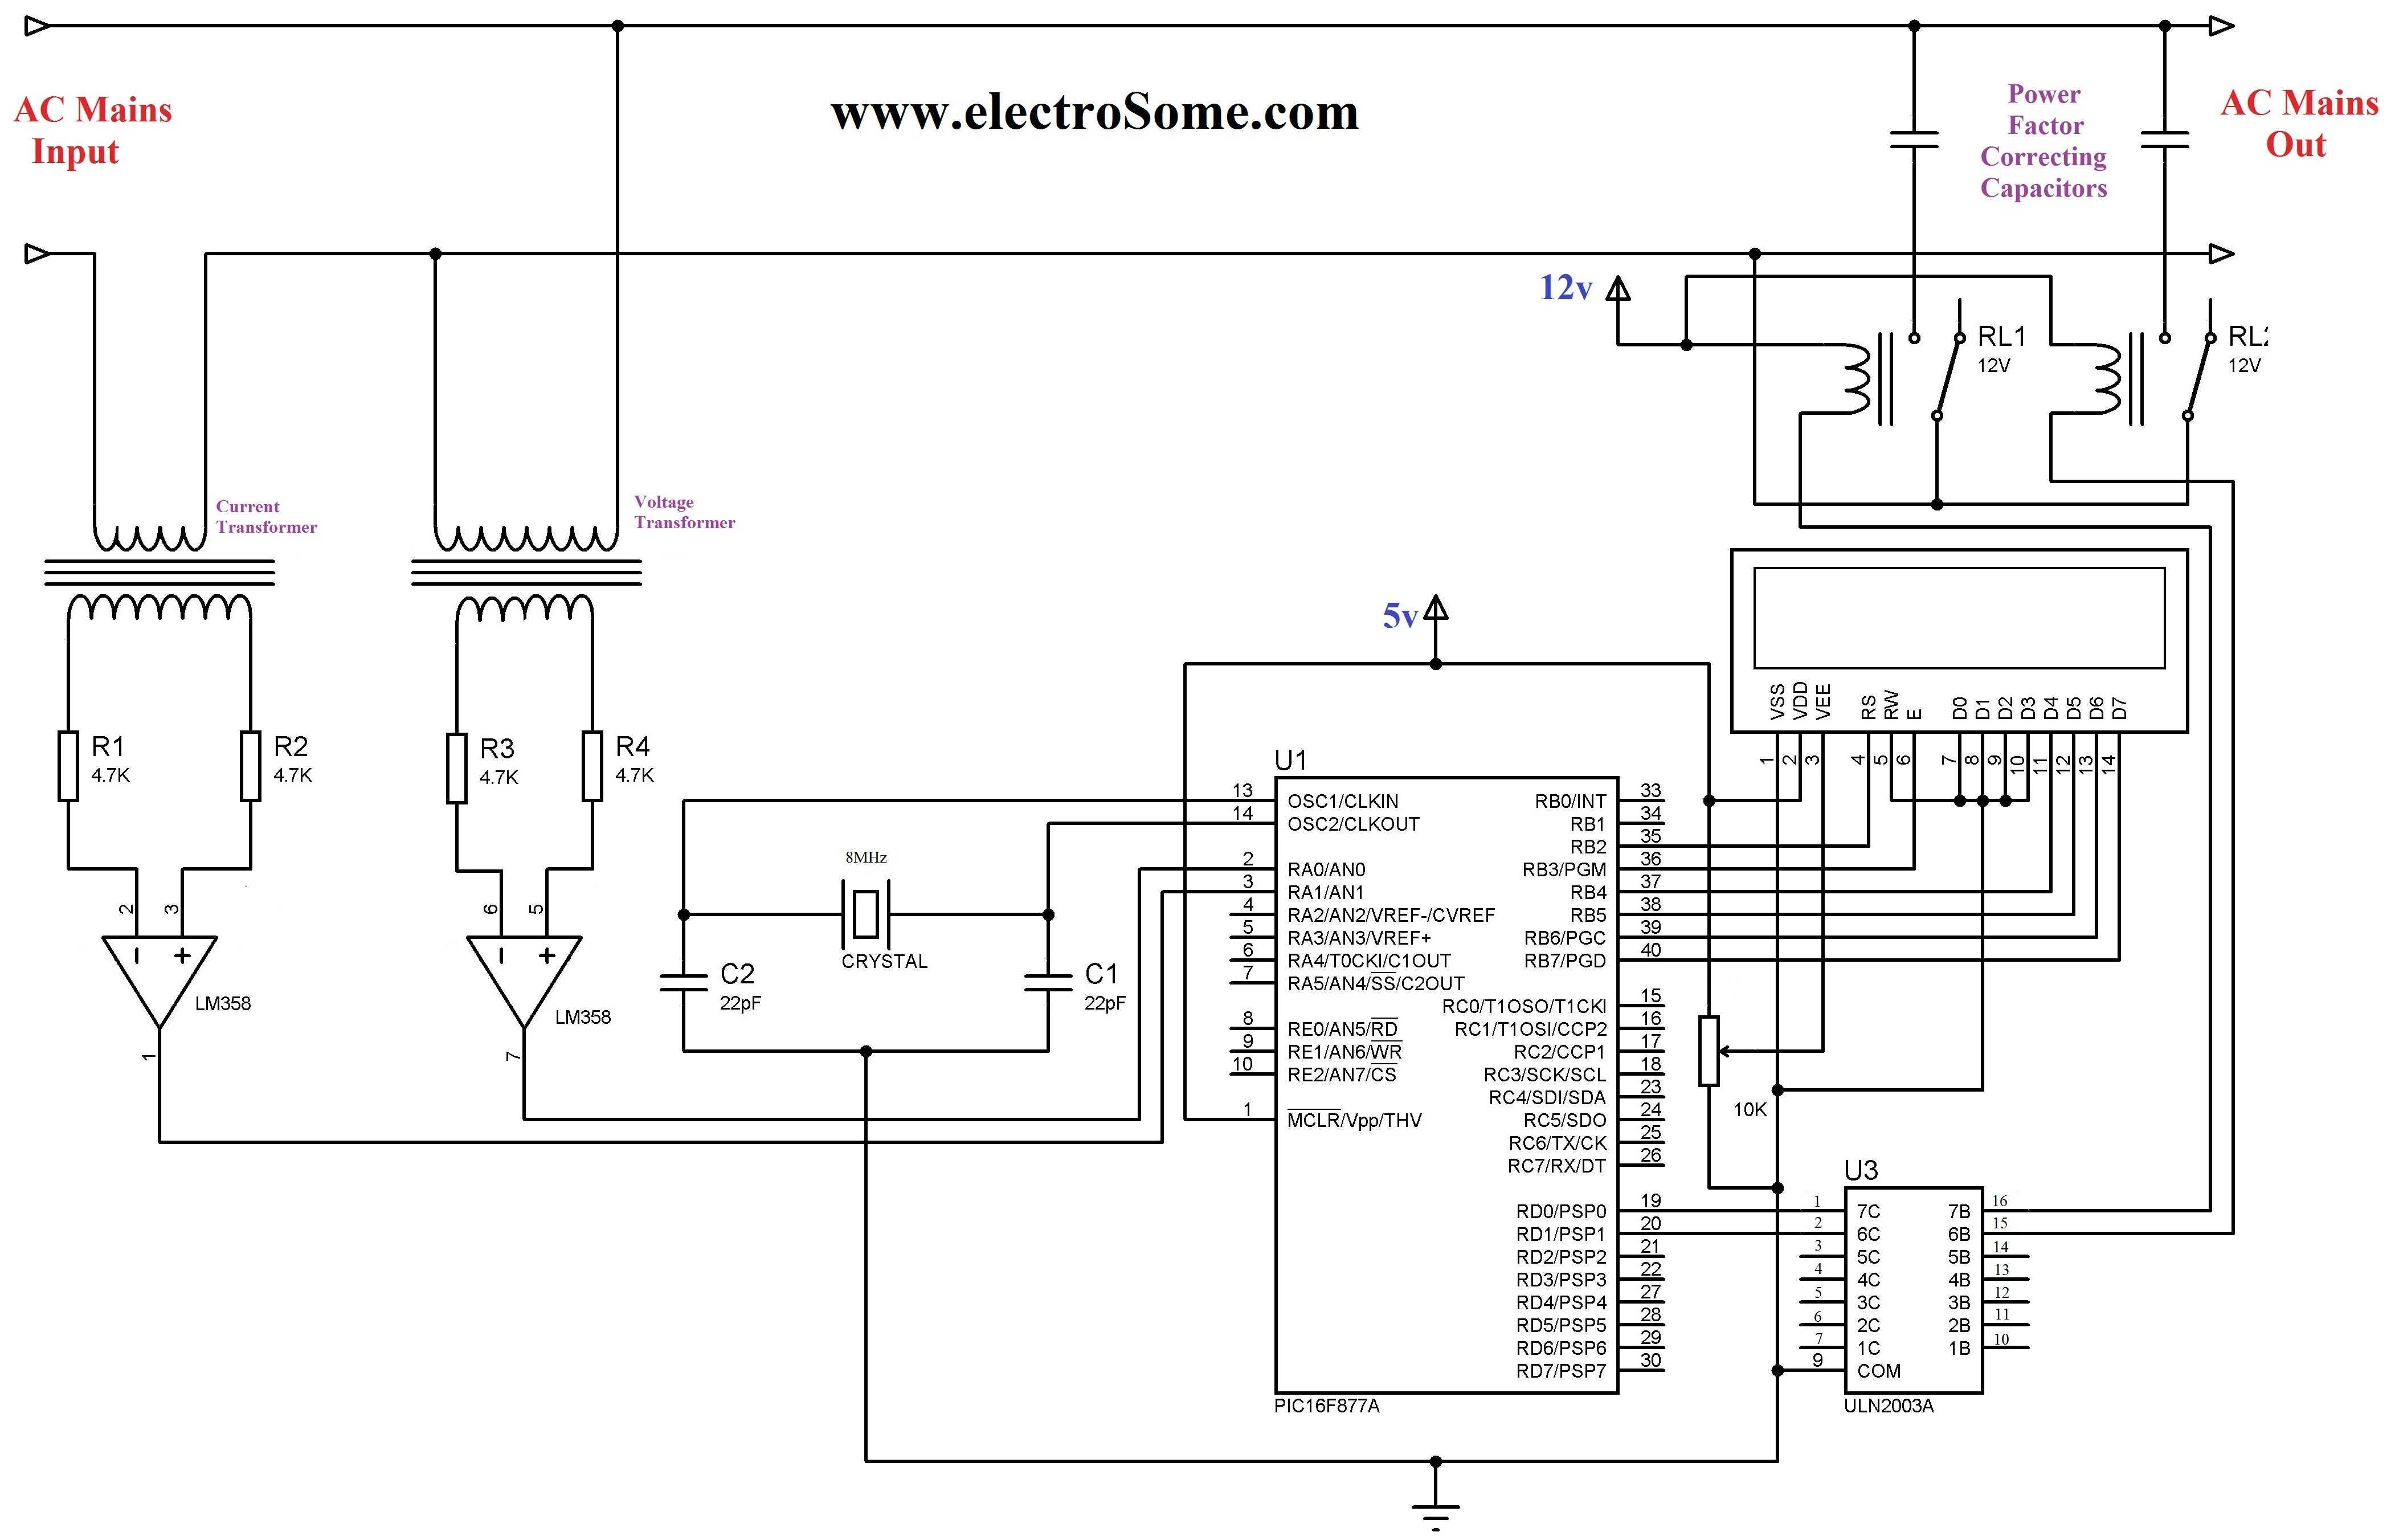 Marathon Motors Wiring Diagram 49cc Pocket Bike As Ponent Dayton Motor Help A Single Phase Wire Of